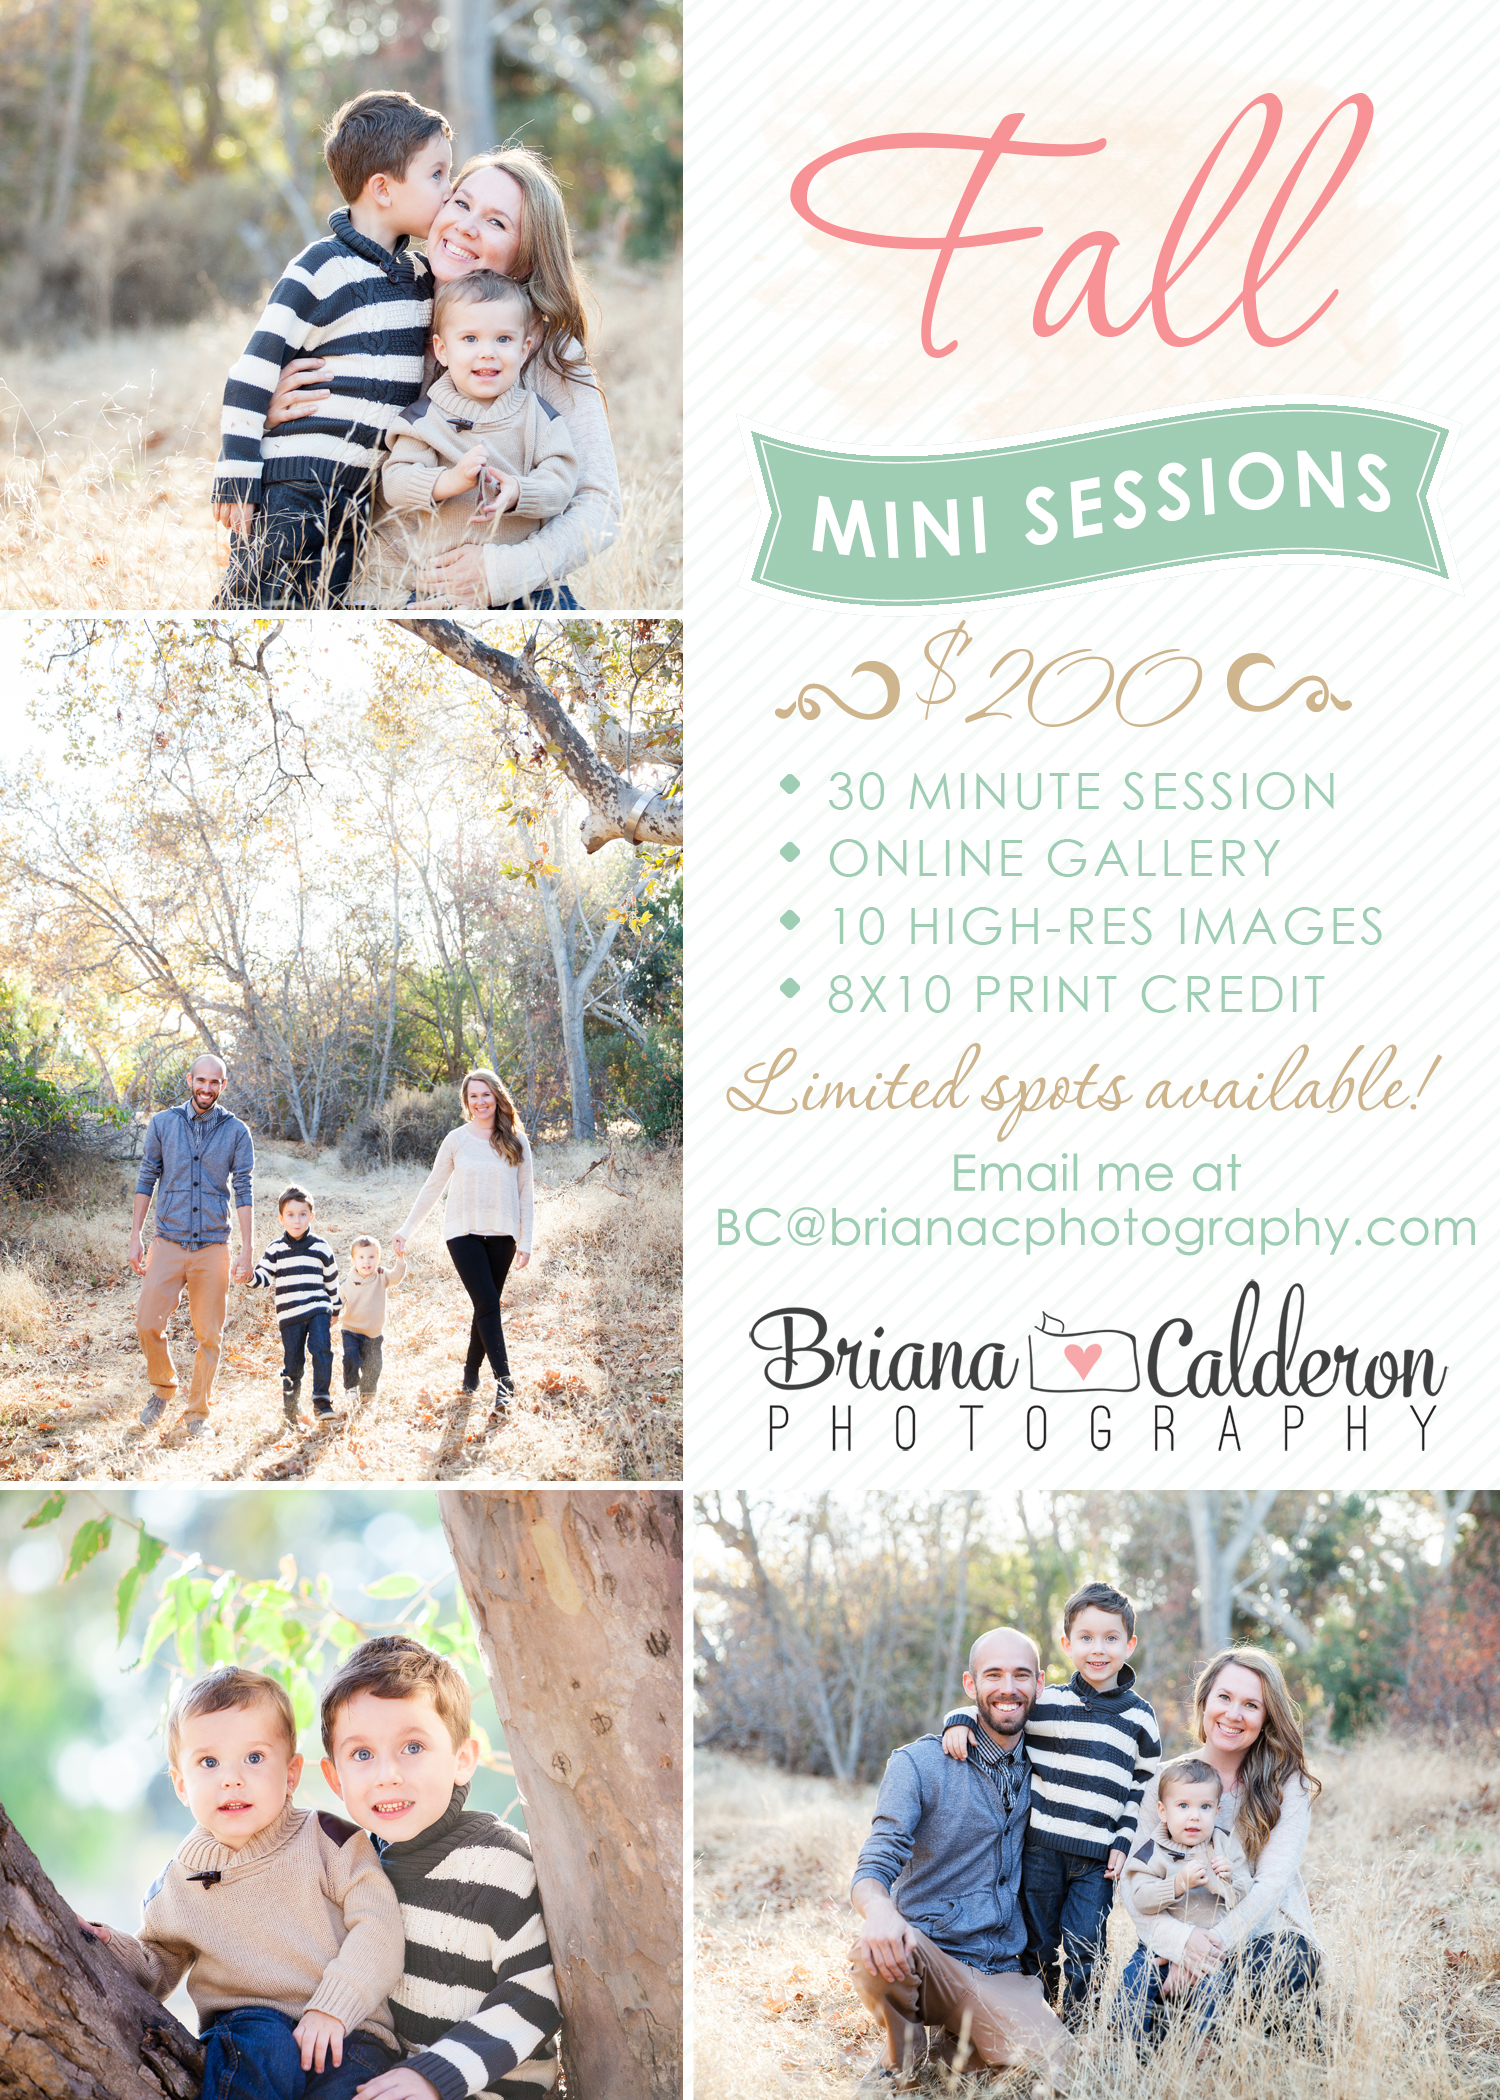 Fall mini photo sessions by Briana Calderon Photography based in the San Francisco Bay Area in California.